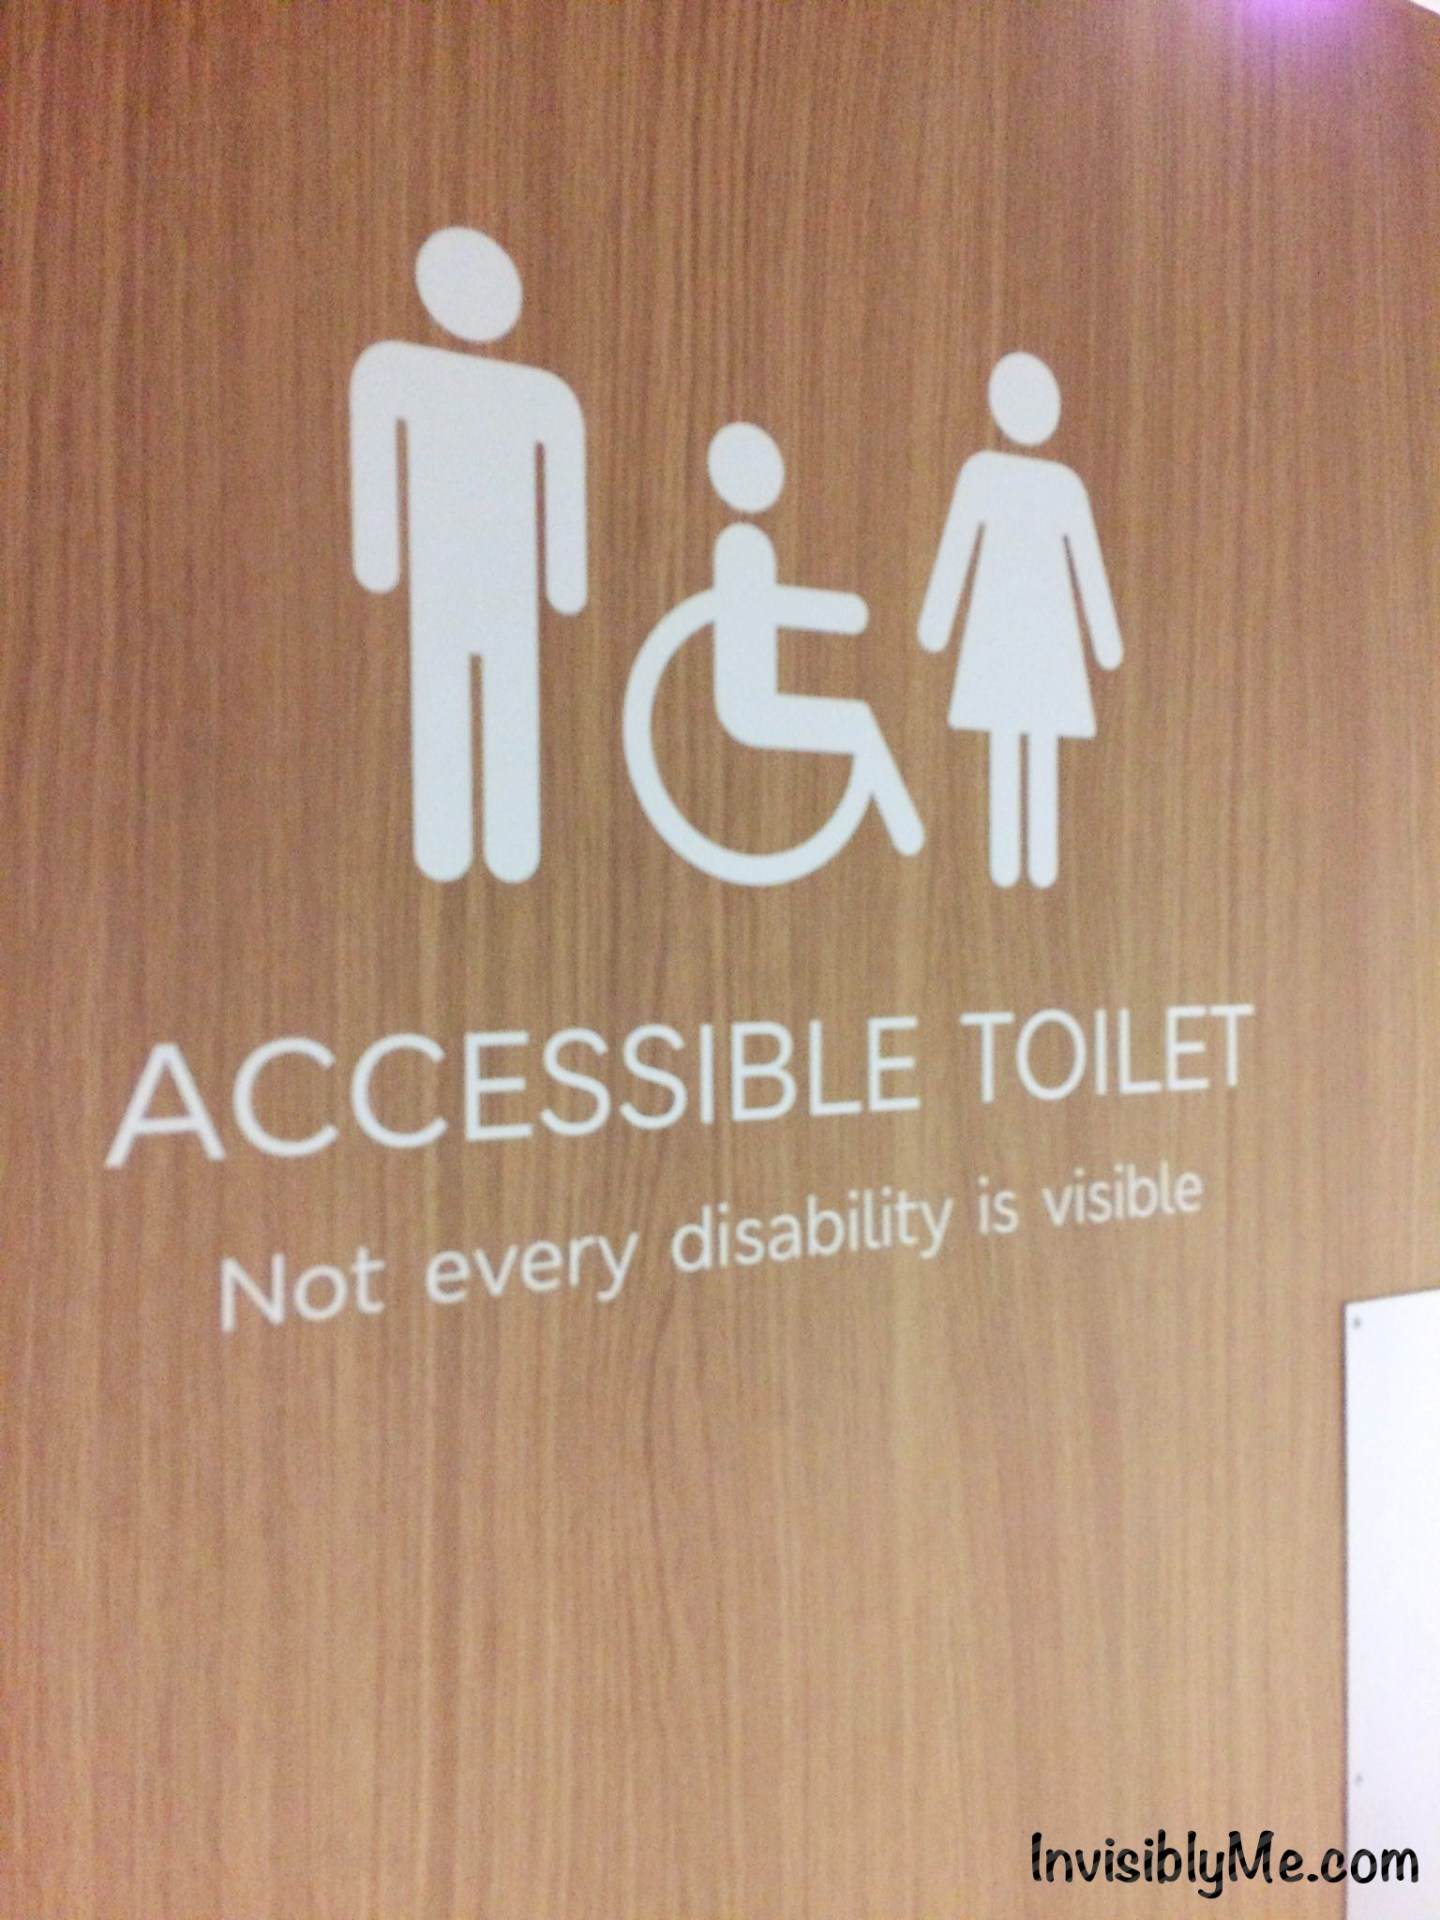 A photo of a public toilet with three figure icons: man, woman and a wheelchair. Underneath it says : 'Accessible toilet. Not every disability is visible'.